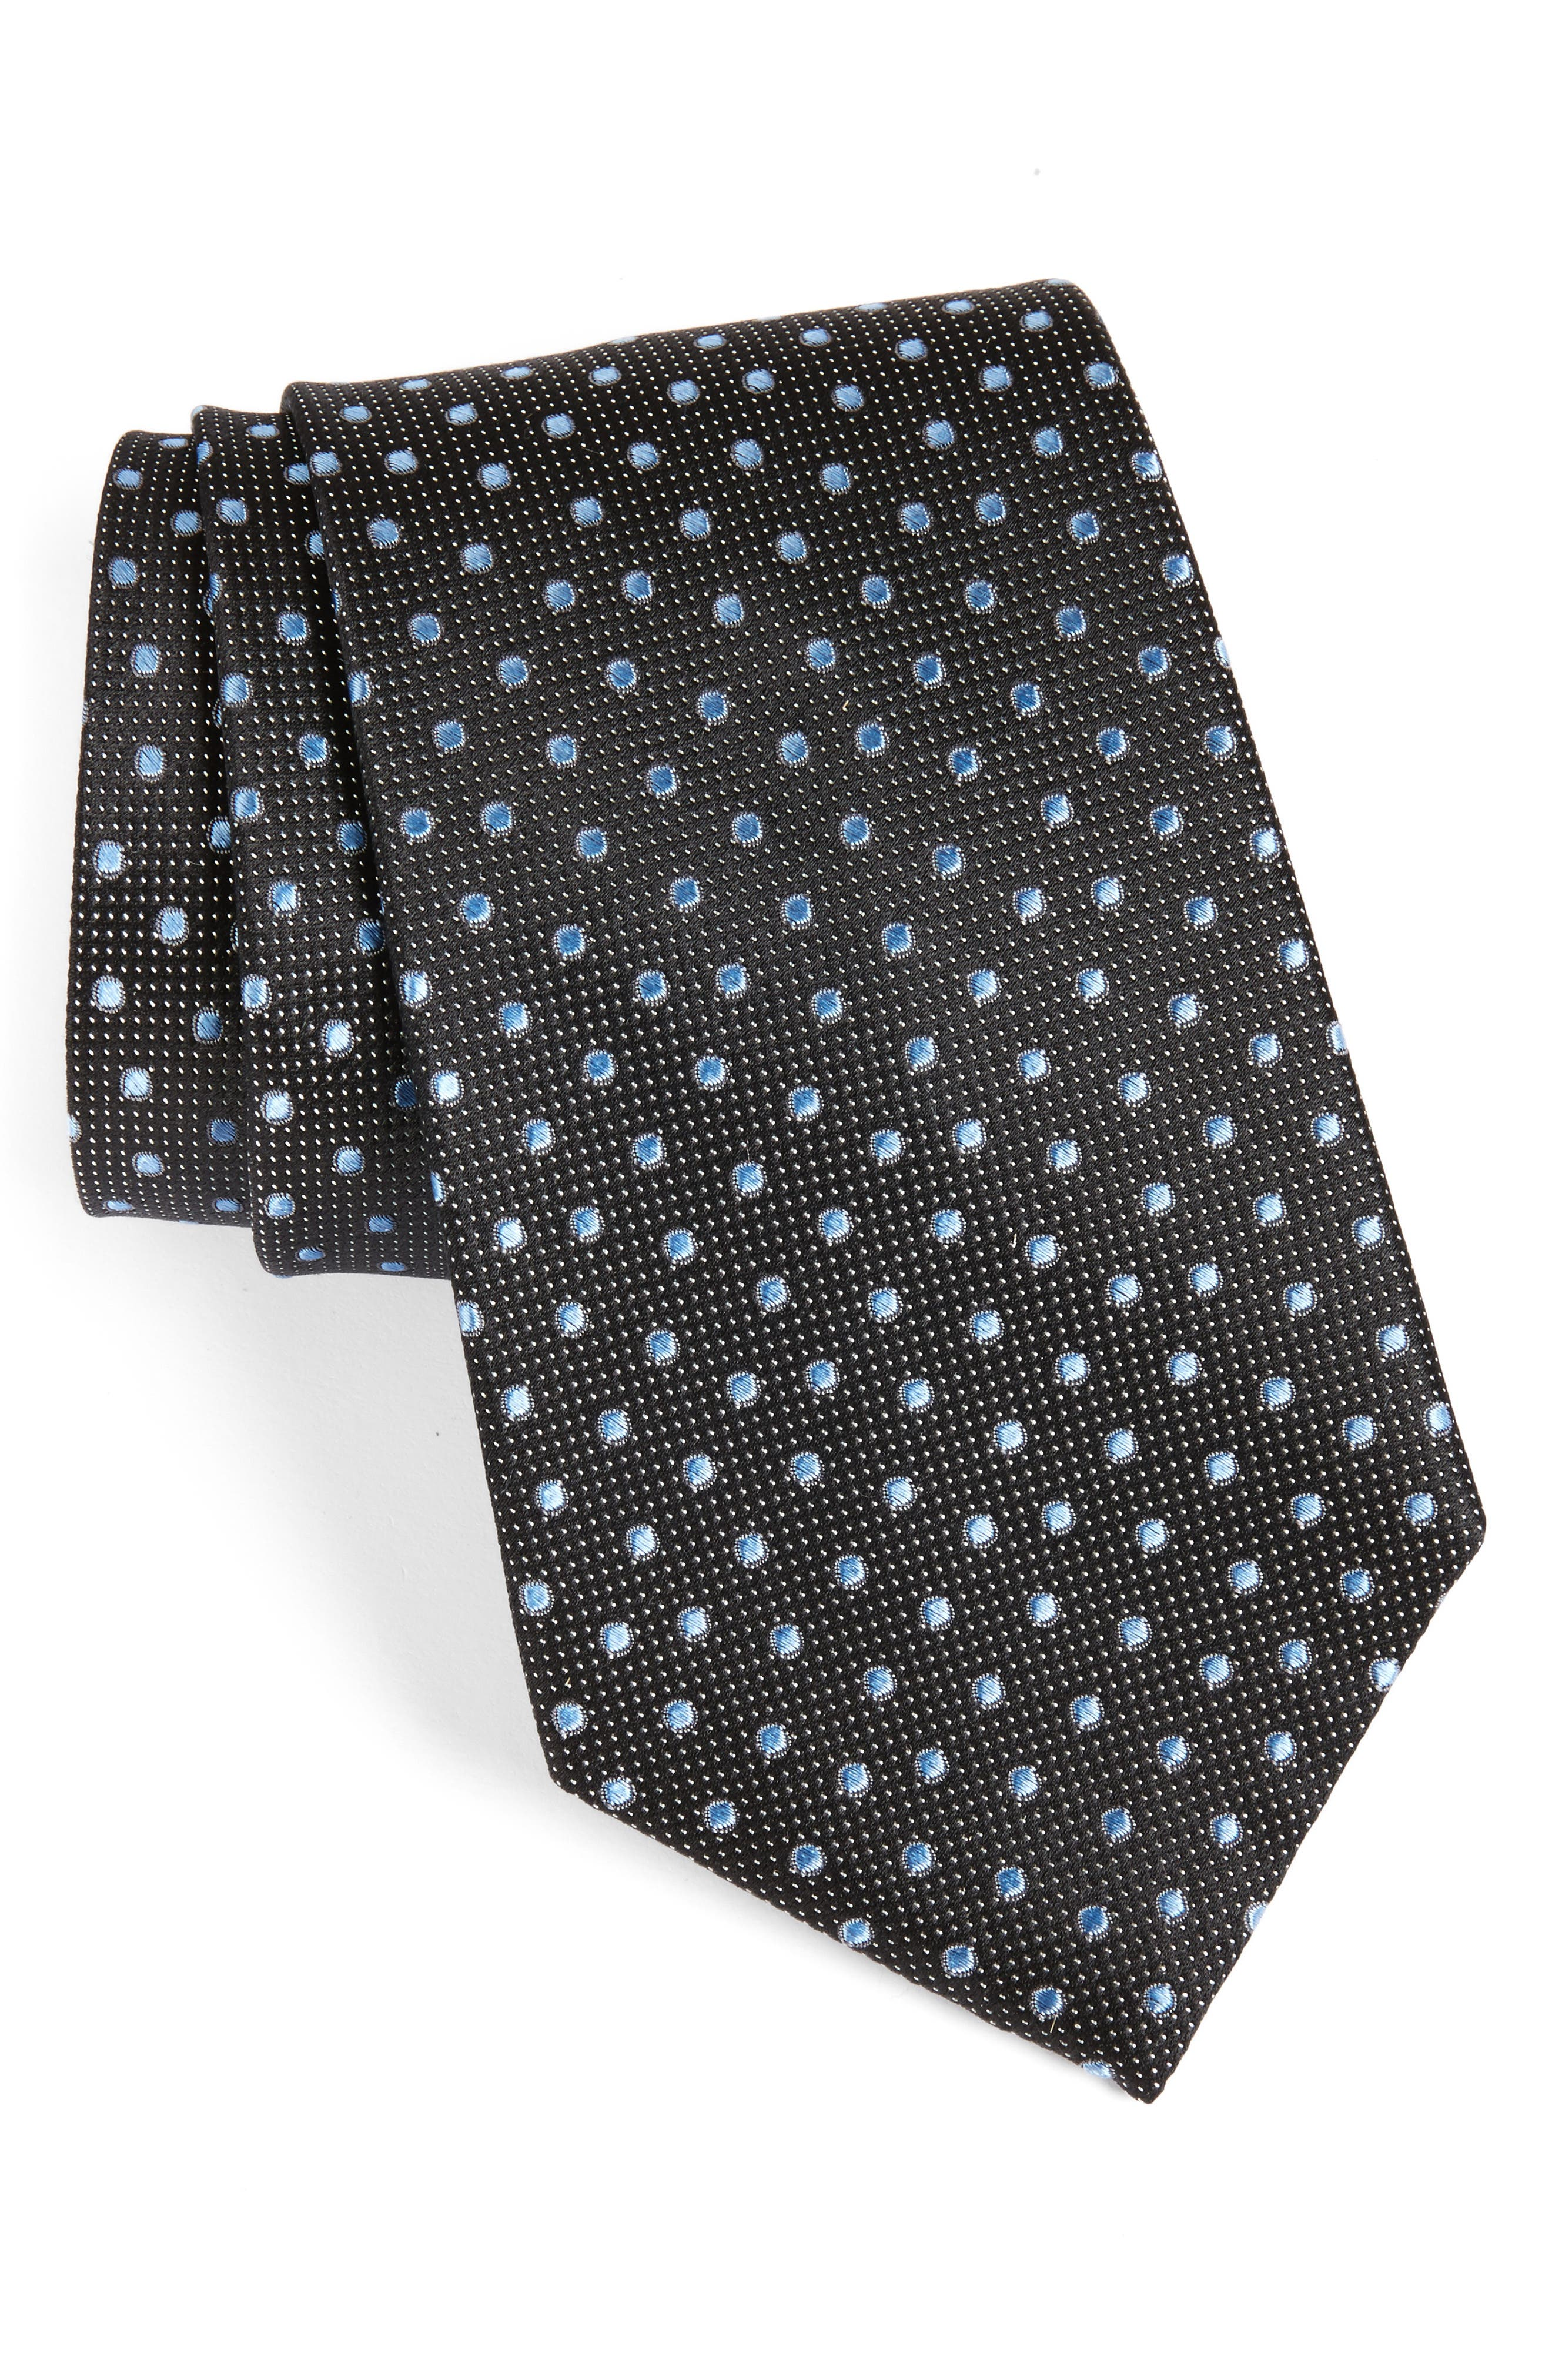 Our inventory is stocked with all types of men's ties, neckties, skinny ties, bow ties, boys ties, and novelty ties, so choosing might be a bit difficult, but lucky for you, our website allows you to shop for exactly what you want, be it a specific pattern, color, or fabric, shopping with coolvloadx4.ga is easy and efficient.